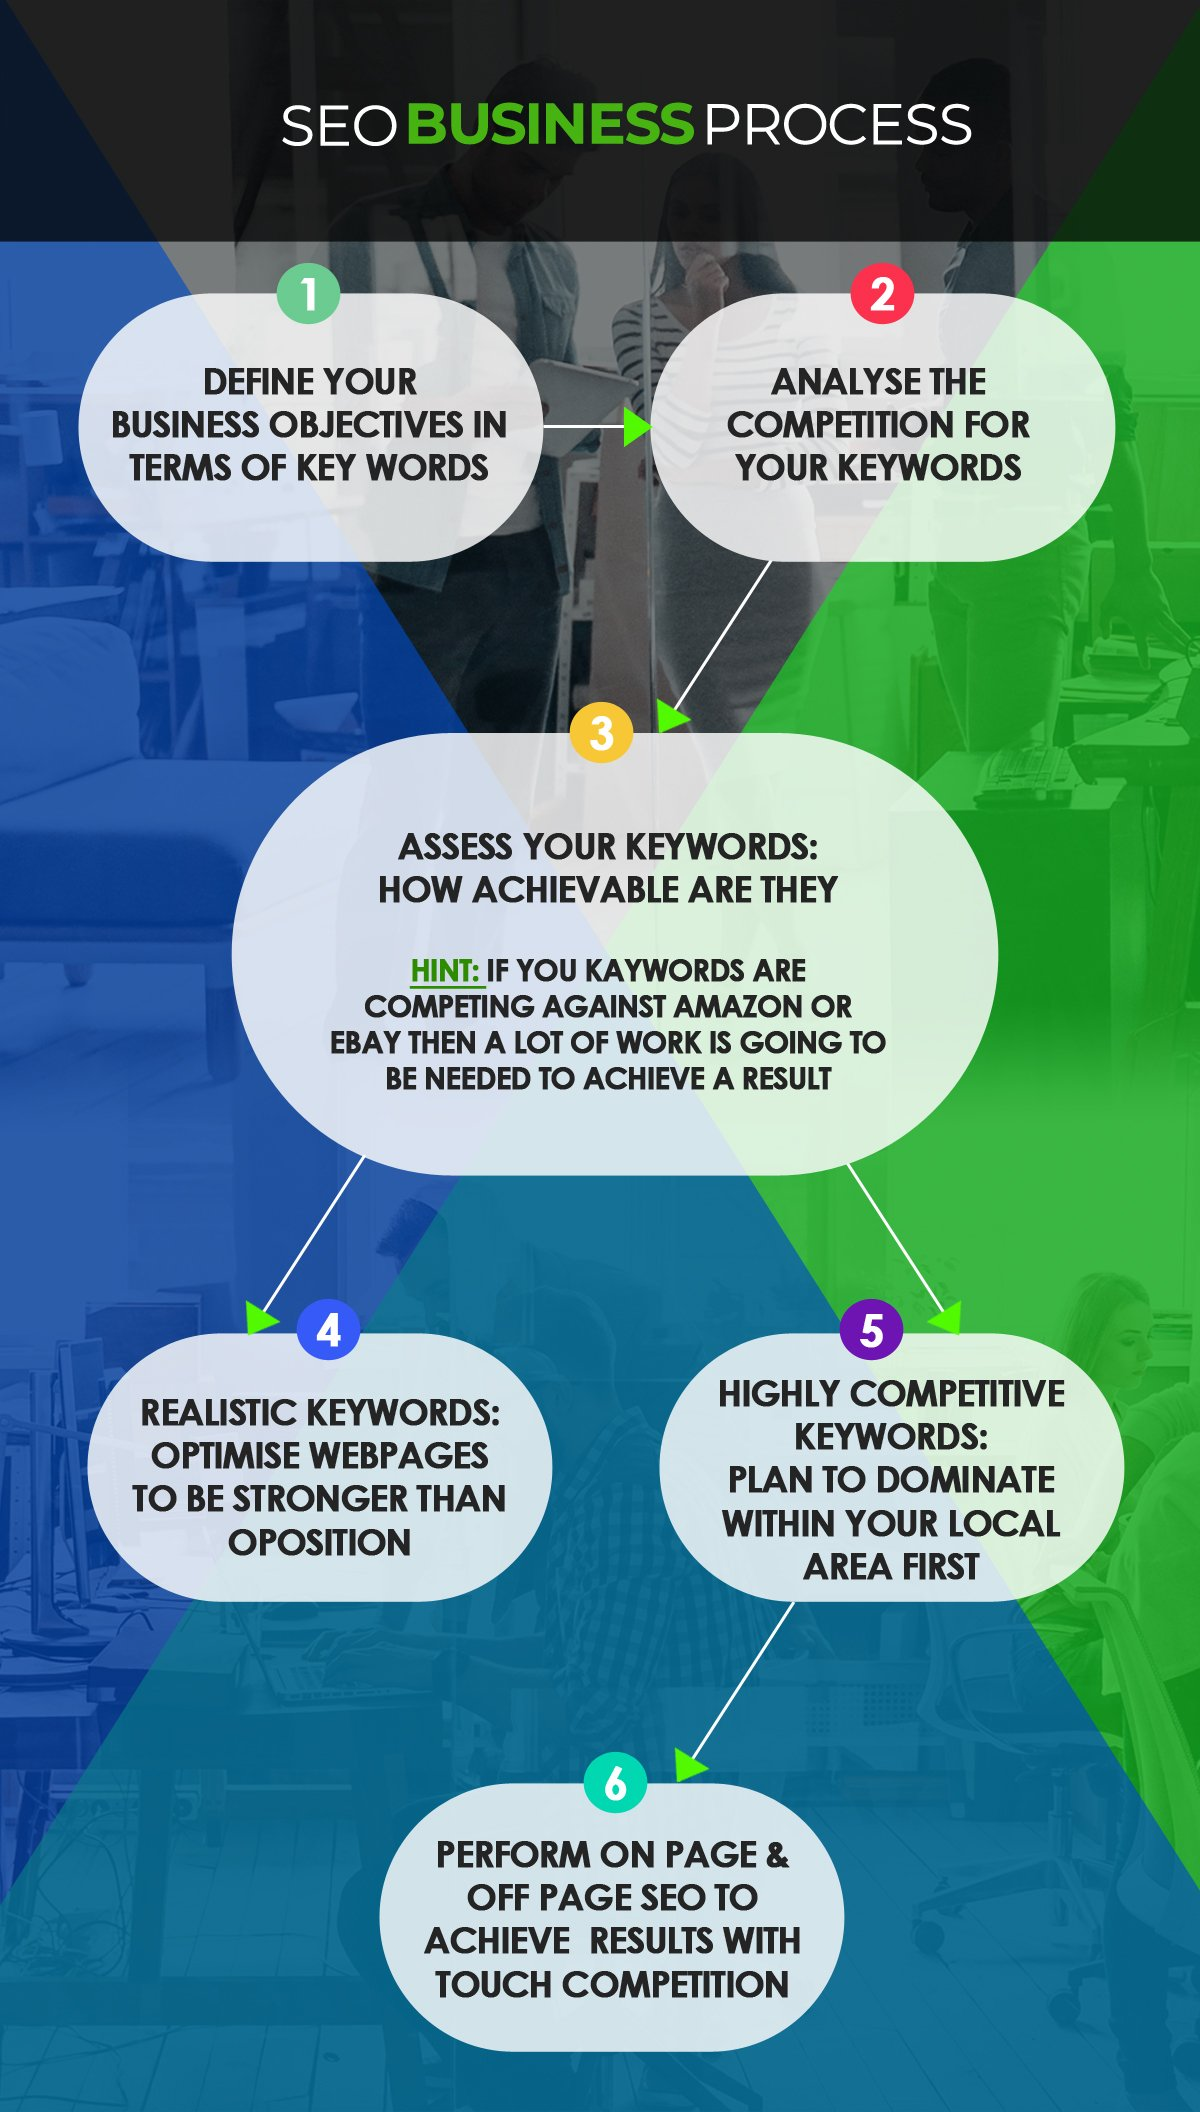 SEO Business Process Infographic